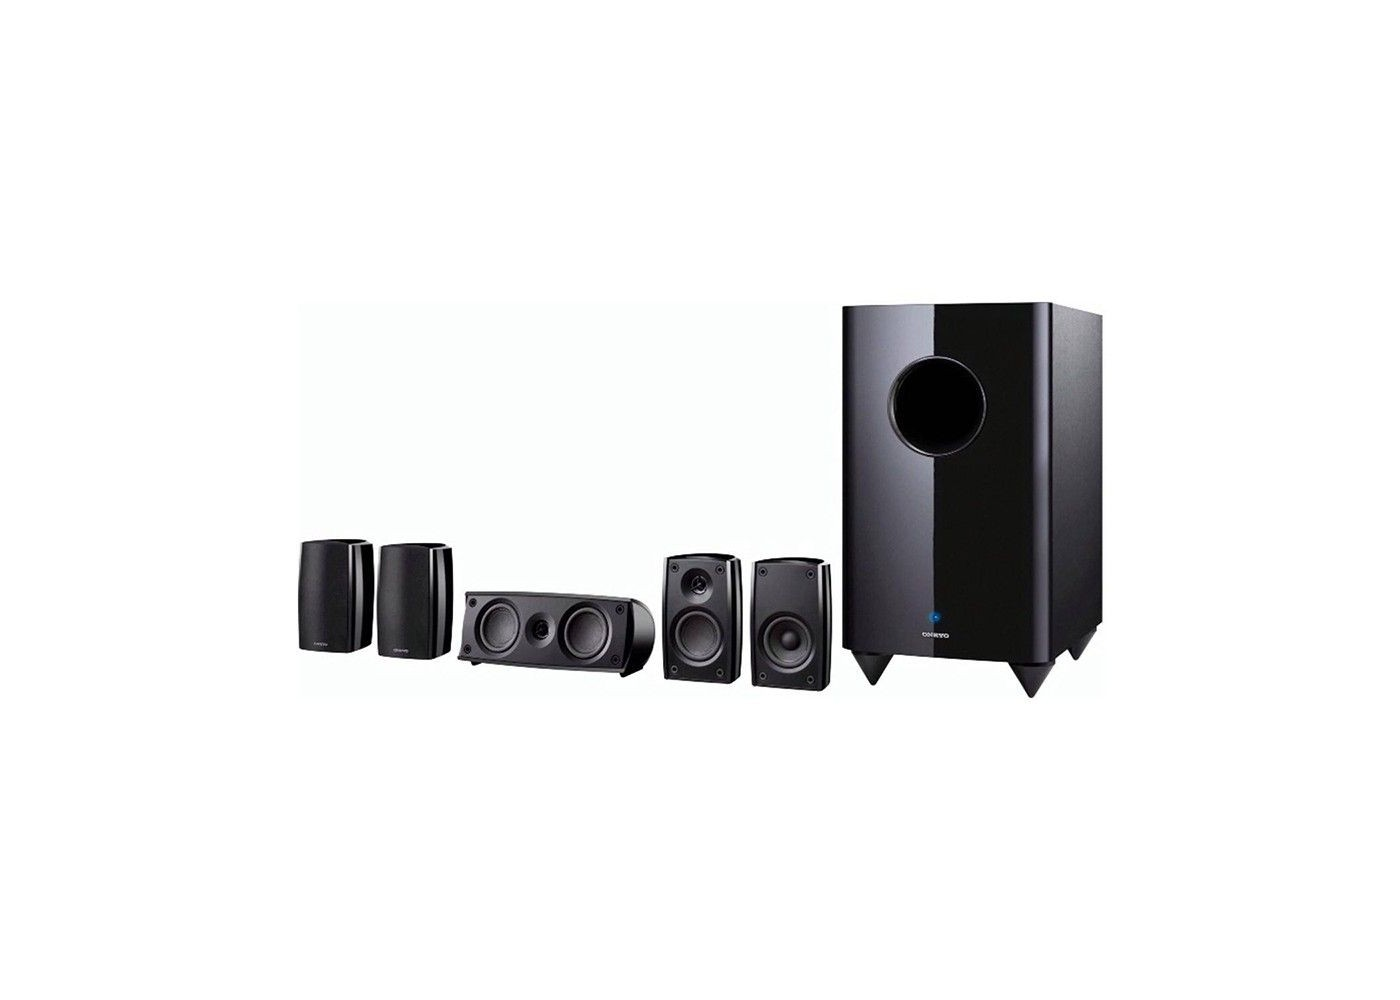 Onkyo Sks Ht690 Black 5 1 Channel Home Theater Speaker System